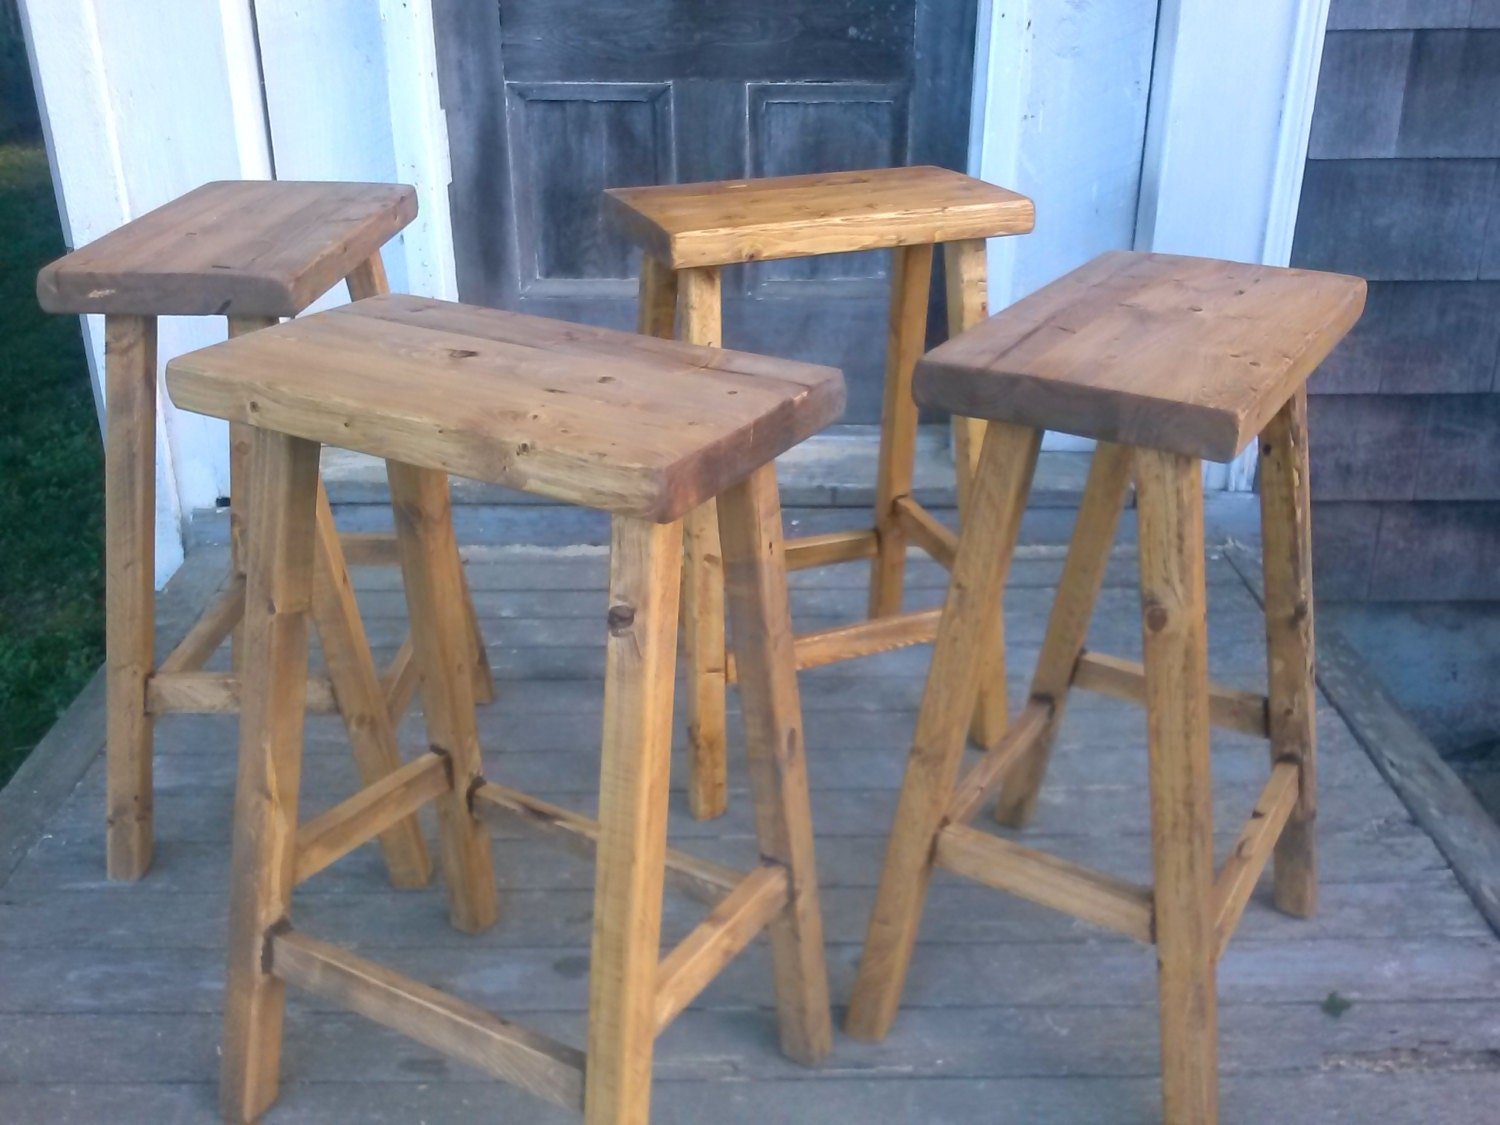 Rustic bar stools set of reclaimed wood